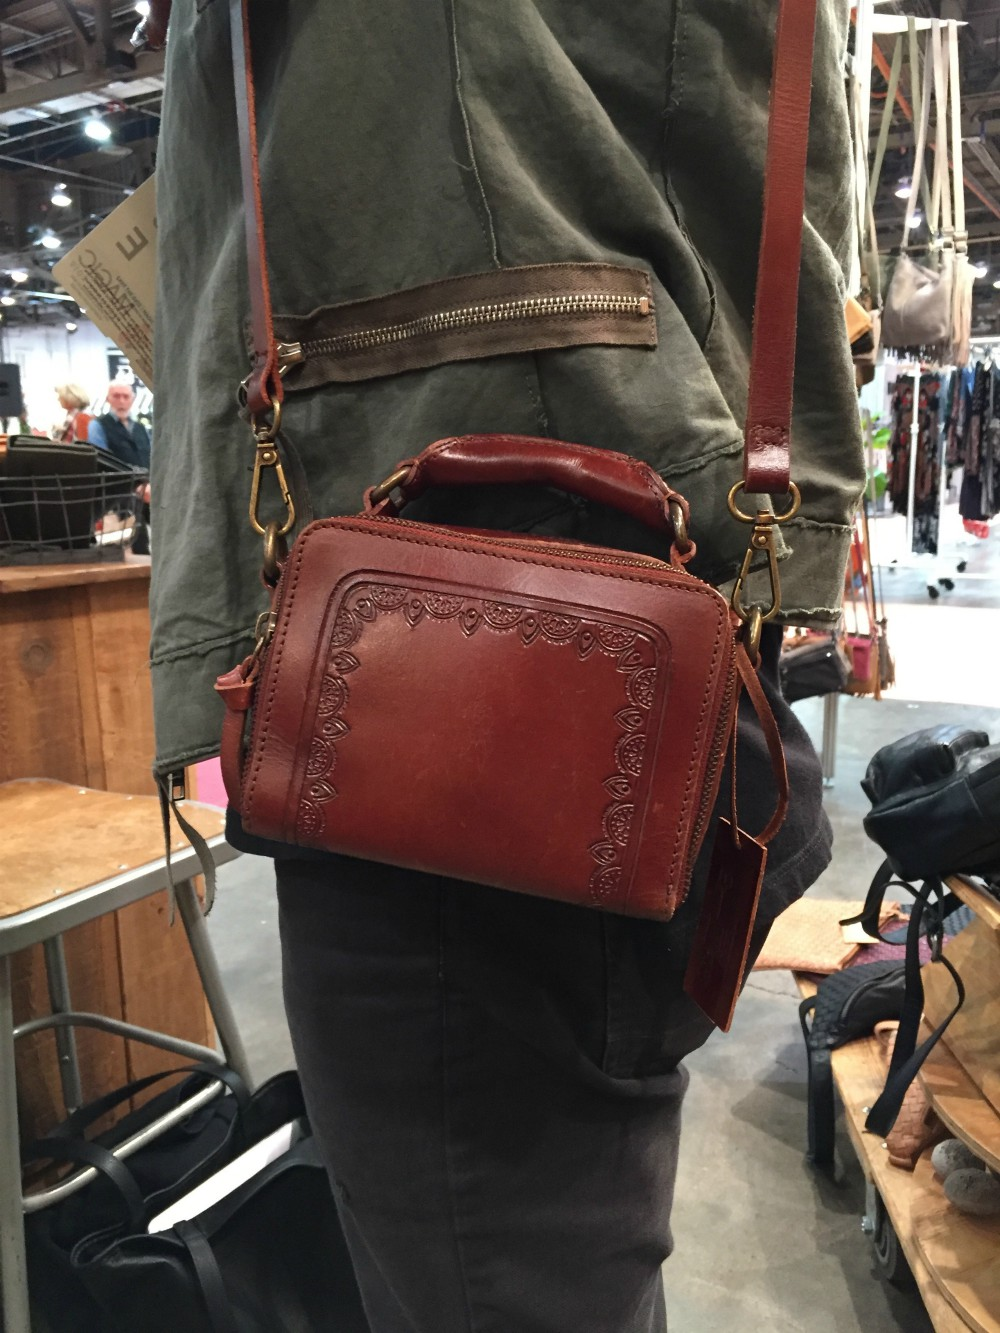 """""""I think people are always trying to free up space in life, and it all starts with the hands and shoulders,"""" said Sherwin Arastoozad of the fall season's trend toward ultra-tiny bags. The designer behind LA-based Cut N' Paste Bags maintained that the smaller styles are actually """"very practical."""" Credit card and media pockets help to """"organize and maximize spacing,"""" he added."""